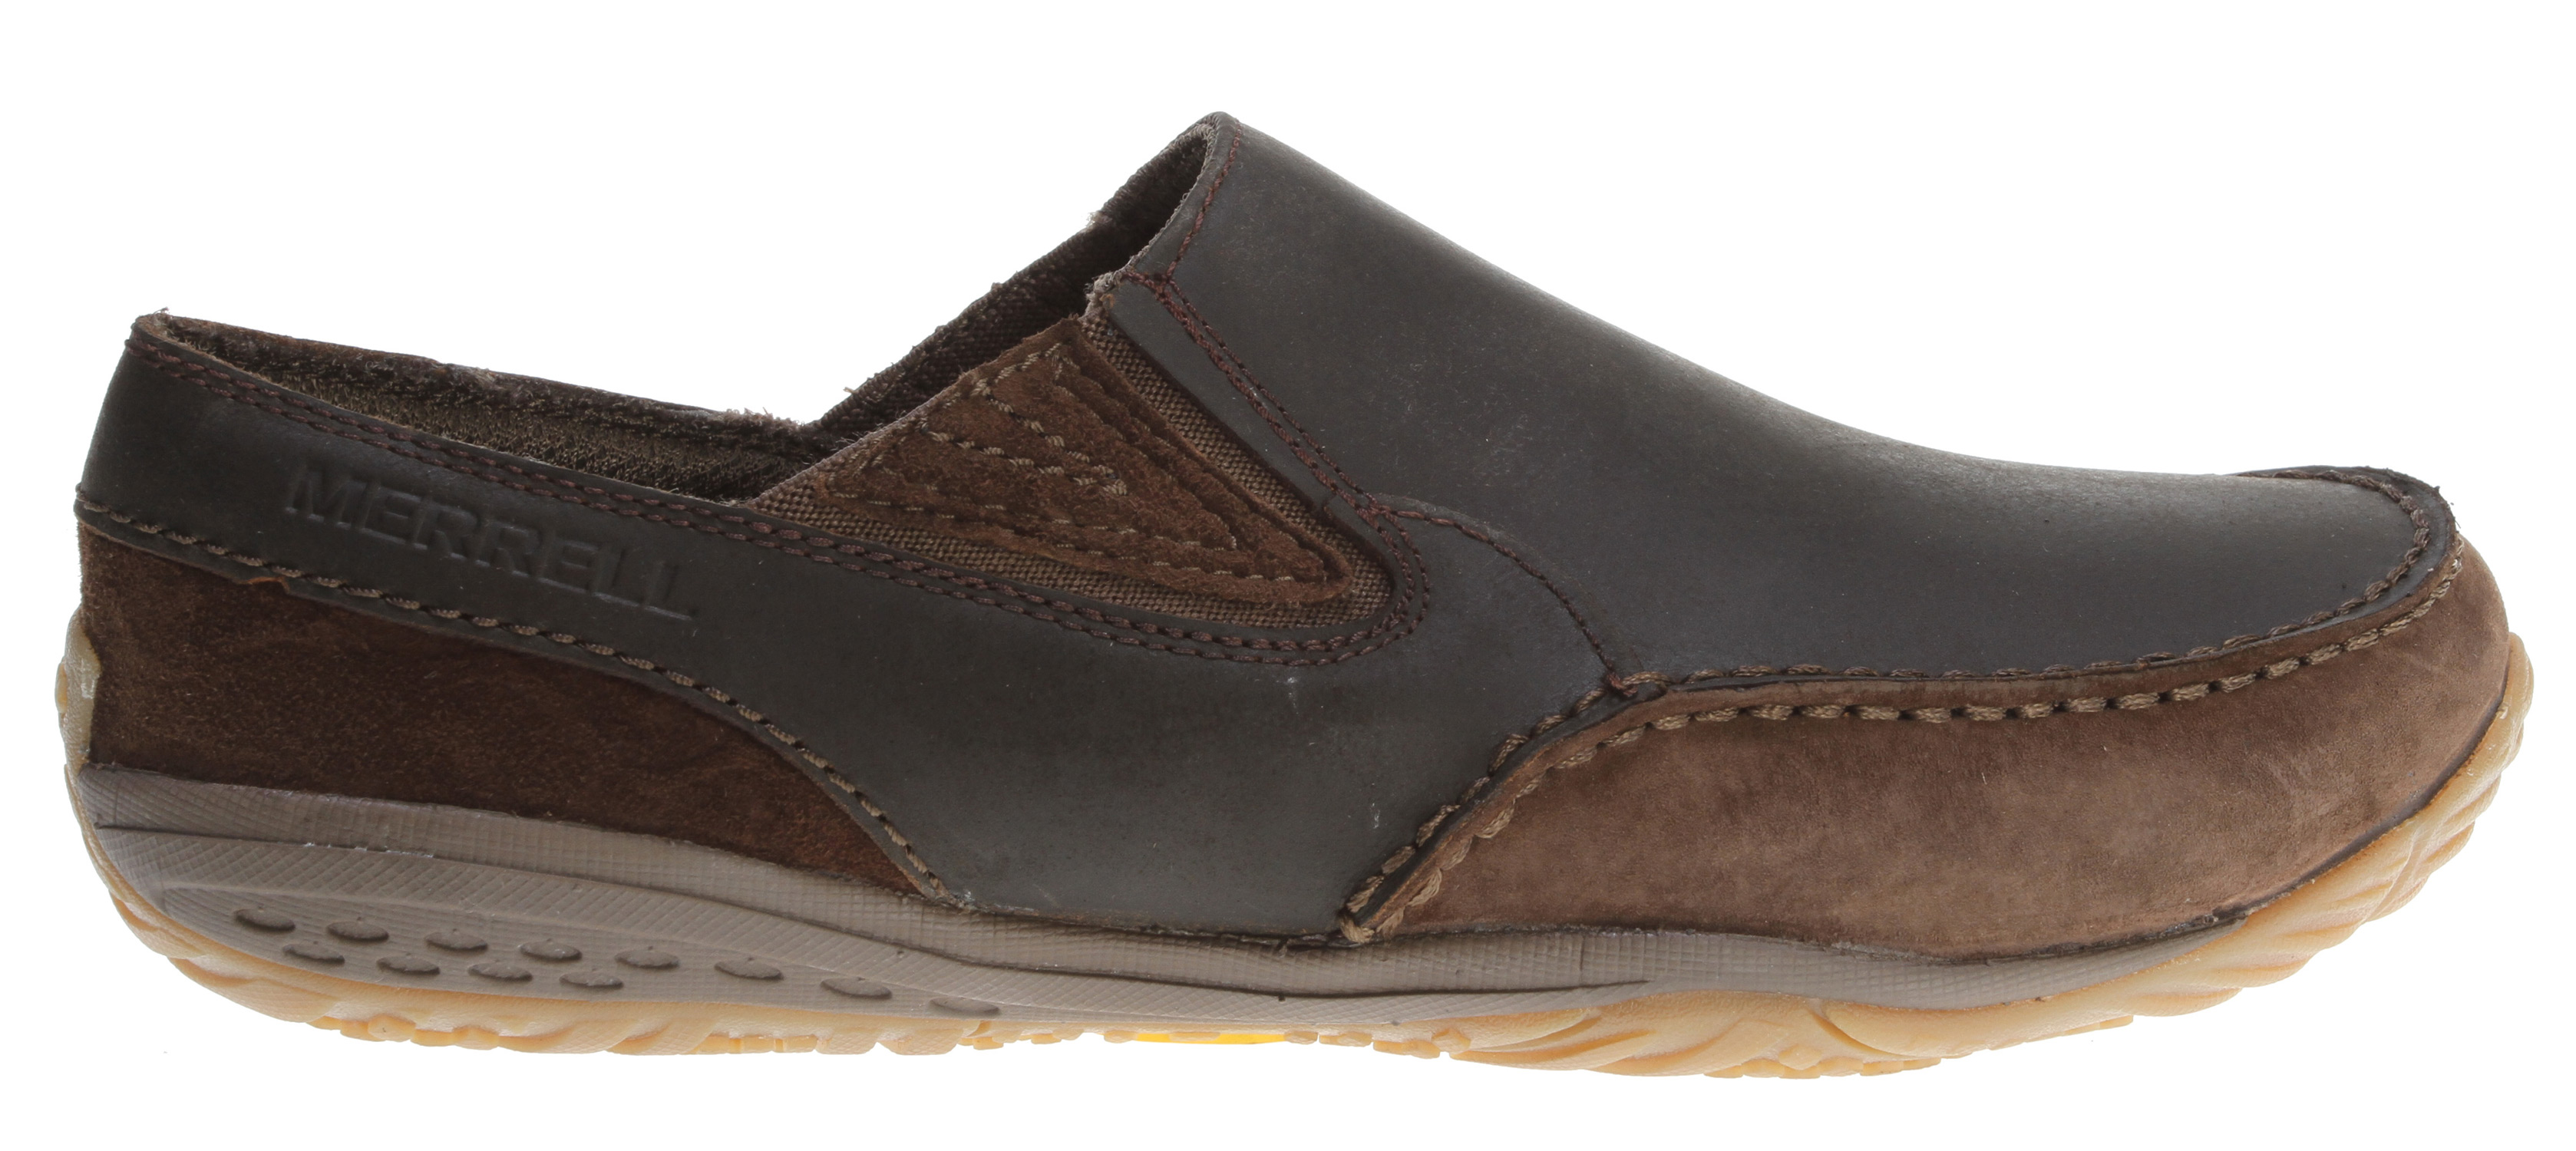 This barefoot casual translates your natural inclinations to life's work and town affairs. The sophisticated, full grain leather, chukka upper has internal support that secures the midfoot over our Barefoot midsole design -- aligning your body and letting you move the way nature intended. A microthin, 1mm flexible forefoot shock plate protects against bruising.Key Features of the Merrell Radius Glove Shoes: Barefoot Strobel construction offers flexibility and comfort Full grain leather and cow suede upper Non-removable microfiber footbed treated with aegis antimicrobial solution resists odor 4 mm compression molded EVA midsole cushion 1 mm forefoot shock absorption plate maintains forefoot flexibility and protects the foot by distributing pressure 0 mm ball to heel drop keeps you connected with your terrain Vibram traction glove sole Men's Weight: 13.8 ozs - $69.95